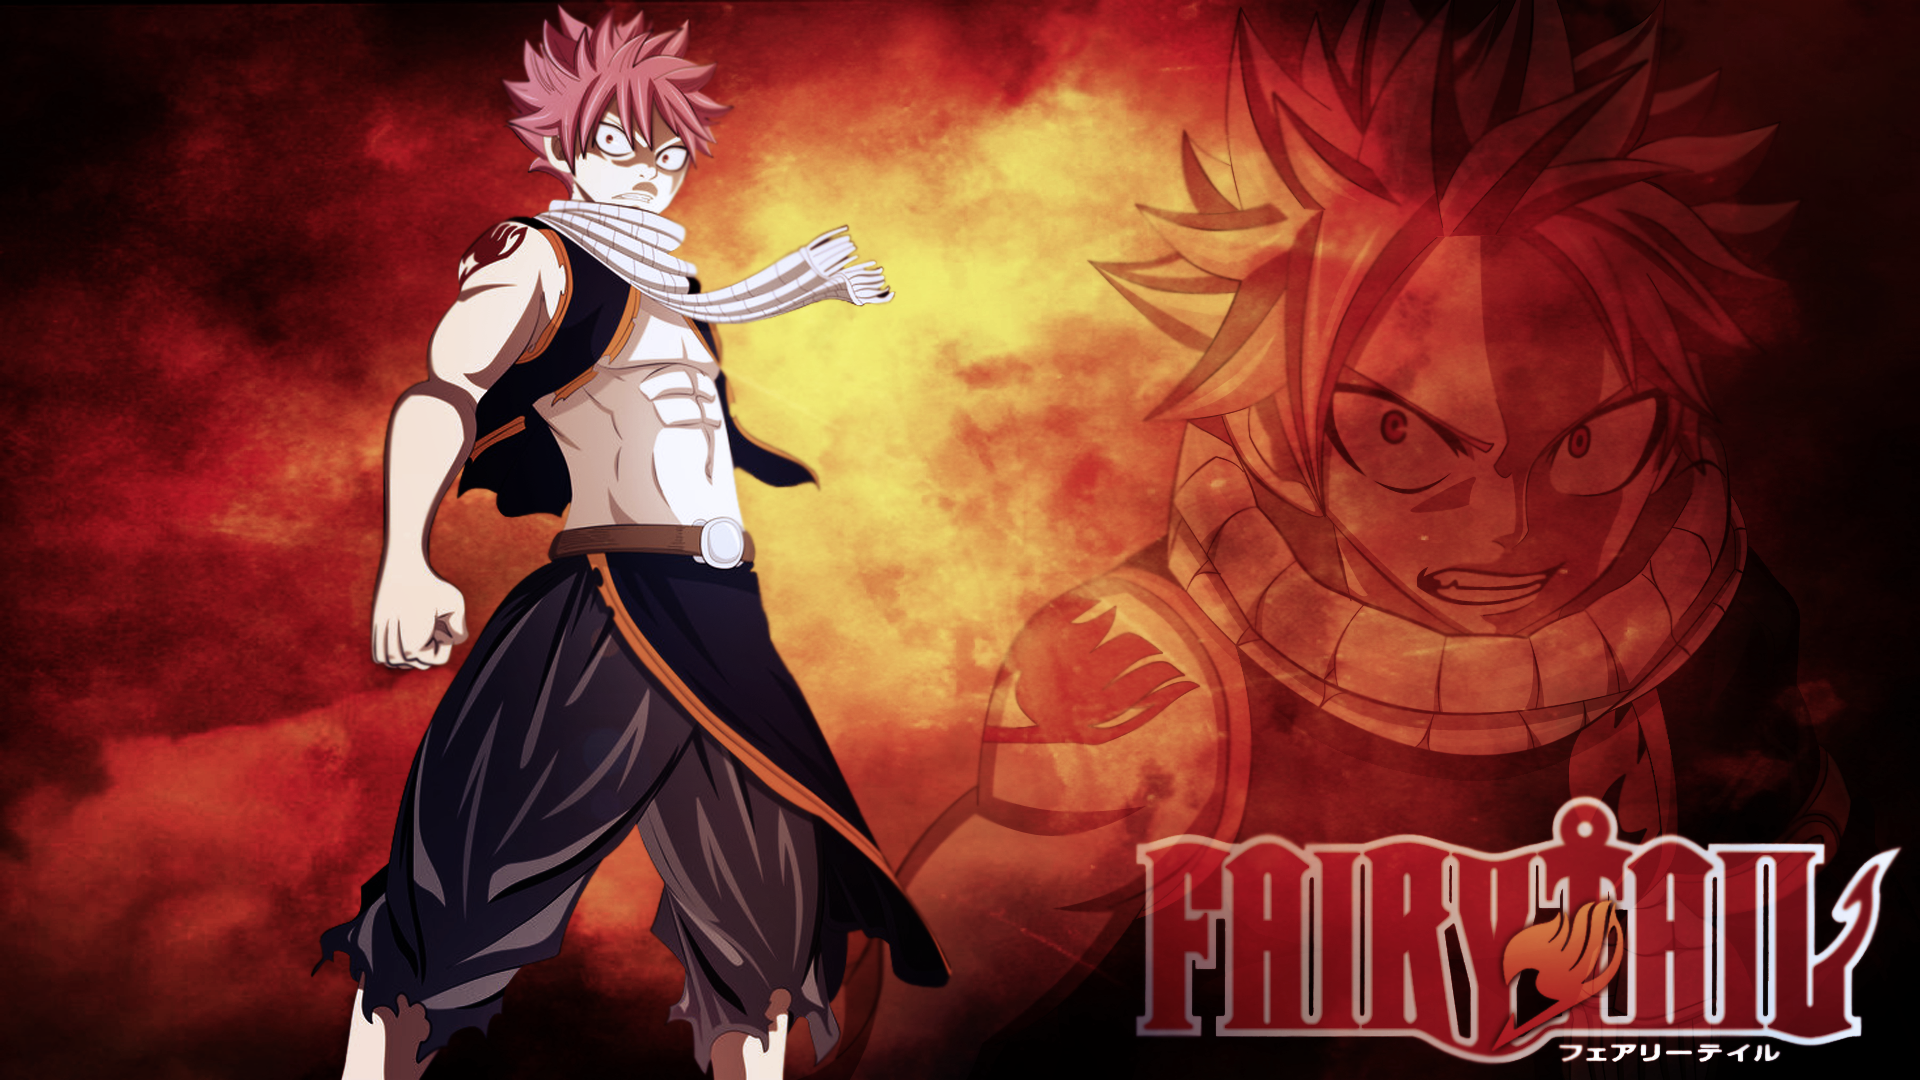 Fairy Tail Wallpaper Background HD 5910 Wallpaper Cool 1920x1080